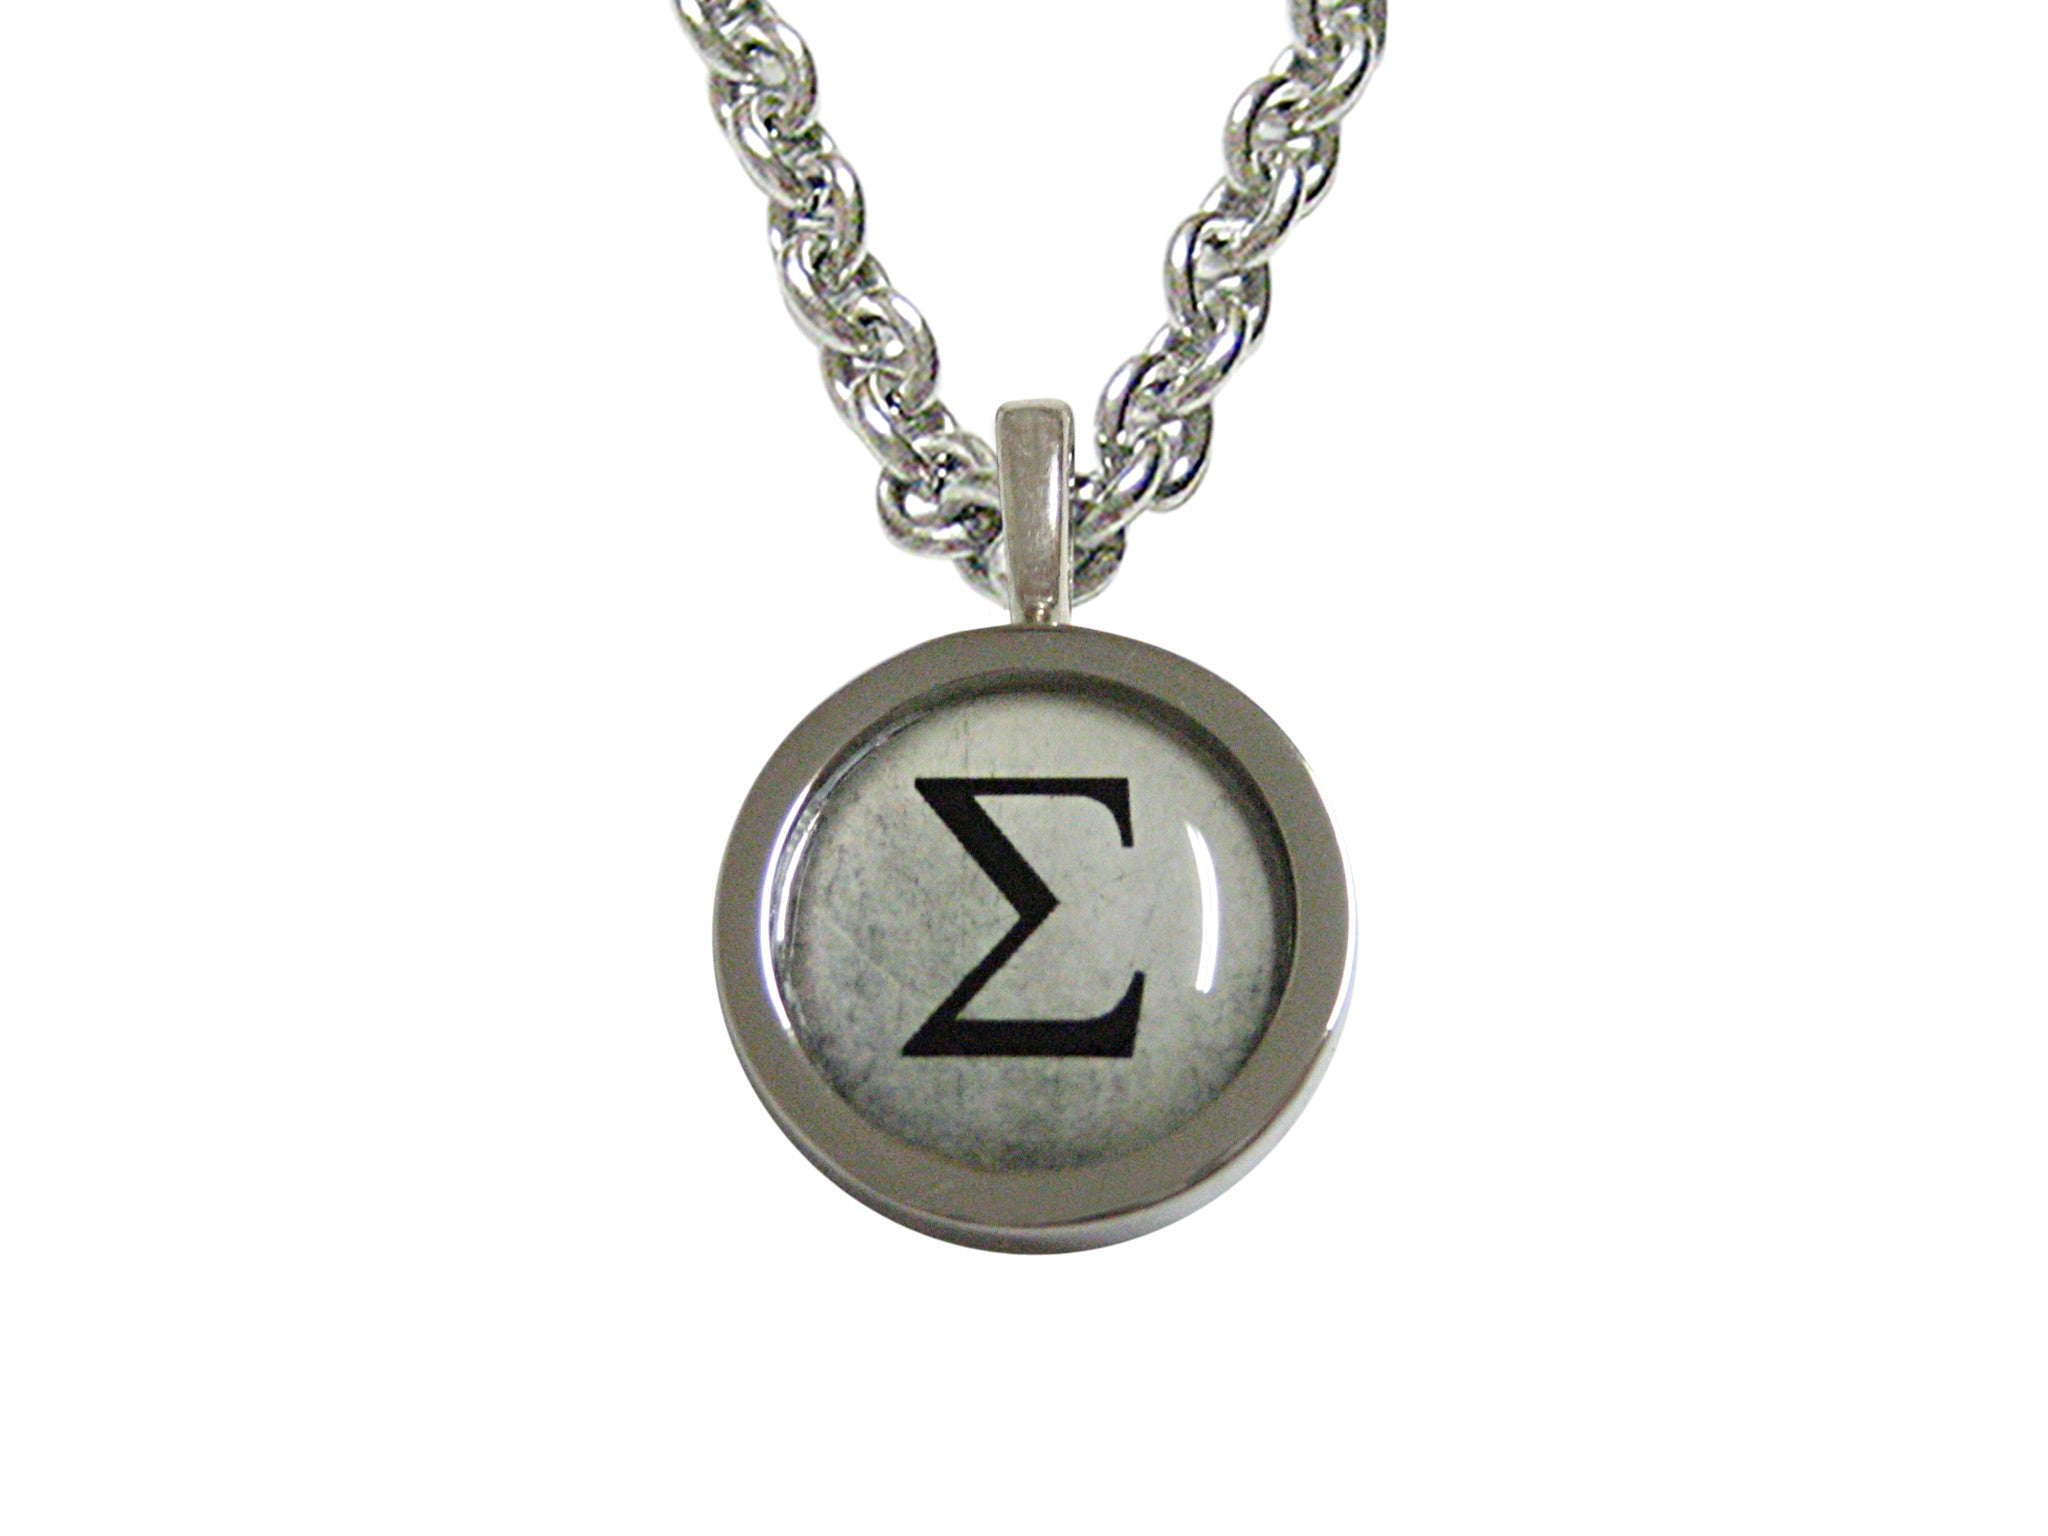 Bordered Mathematical Greek Sigma Symbol Pendant Necklace Kiola